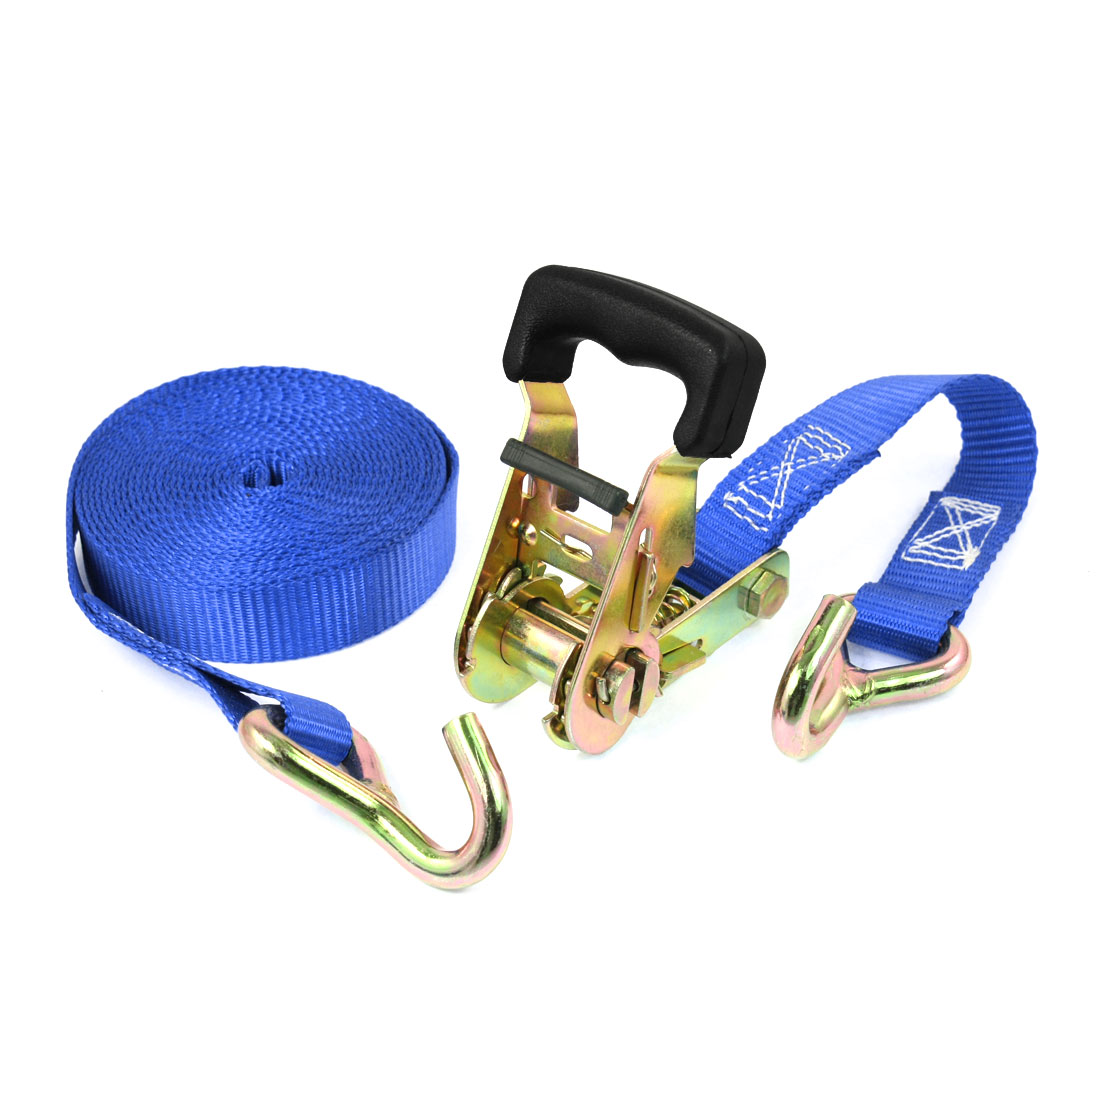 Truck Cargo Binding Metal Hook Ratchet Tie Down Strap 5M 16ft Blue